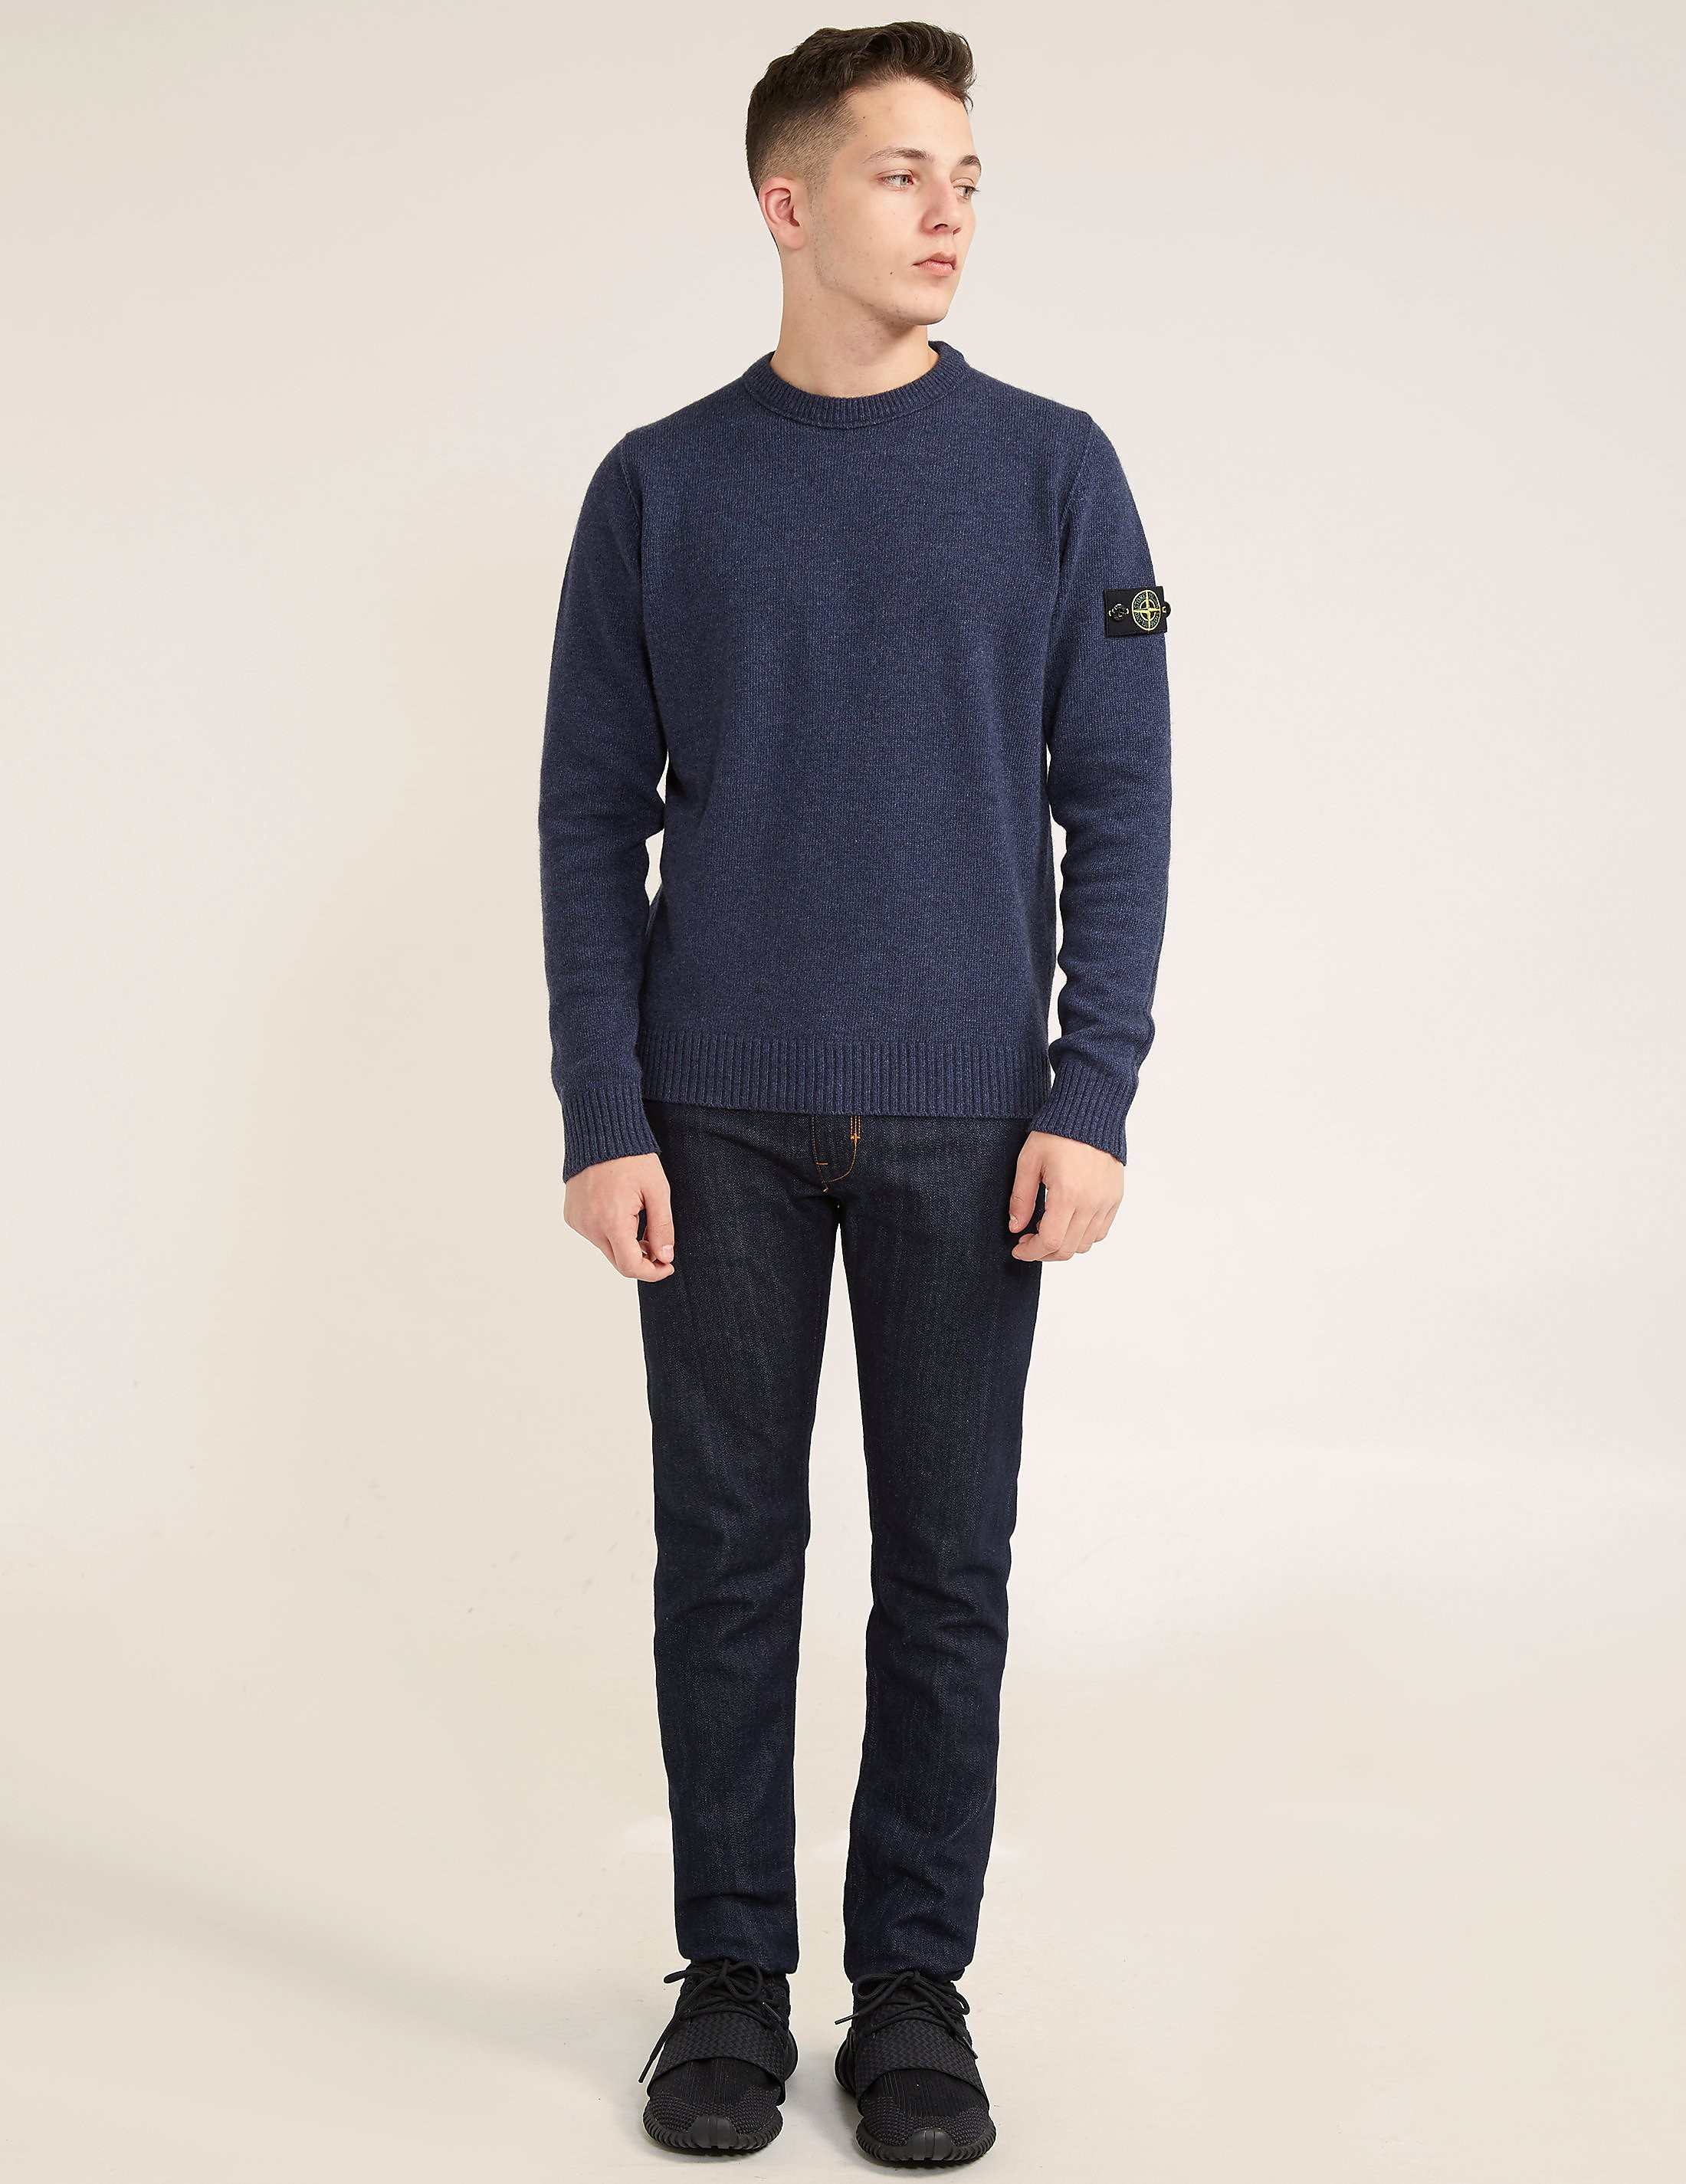 Stone Island Wool Knitted Jumper